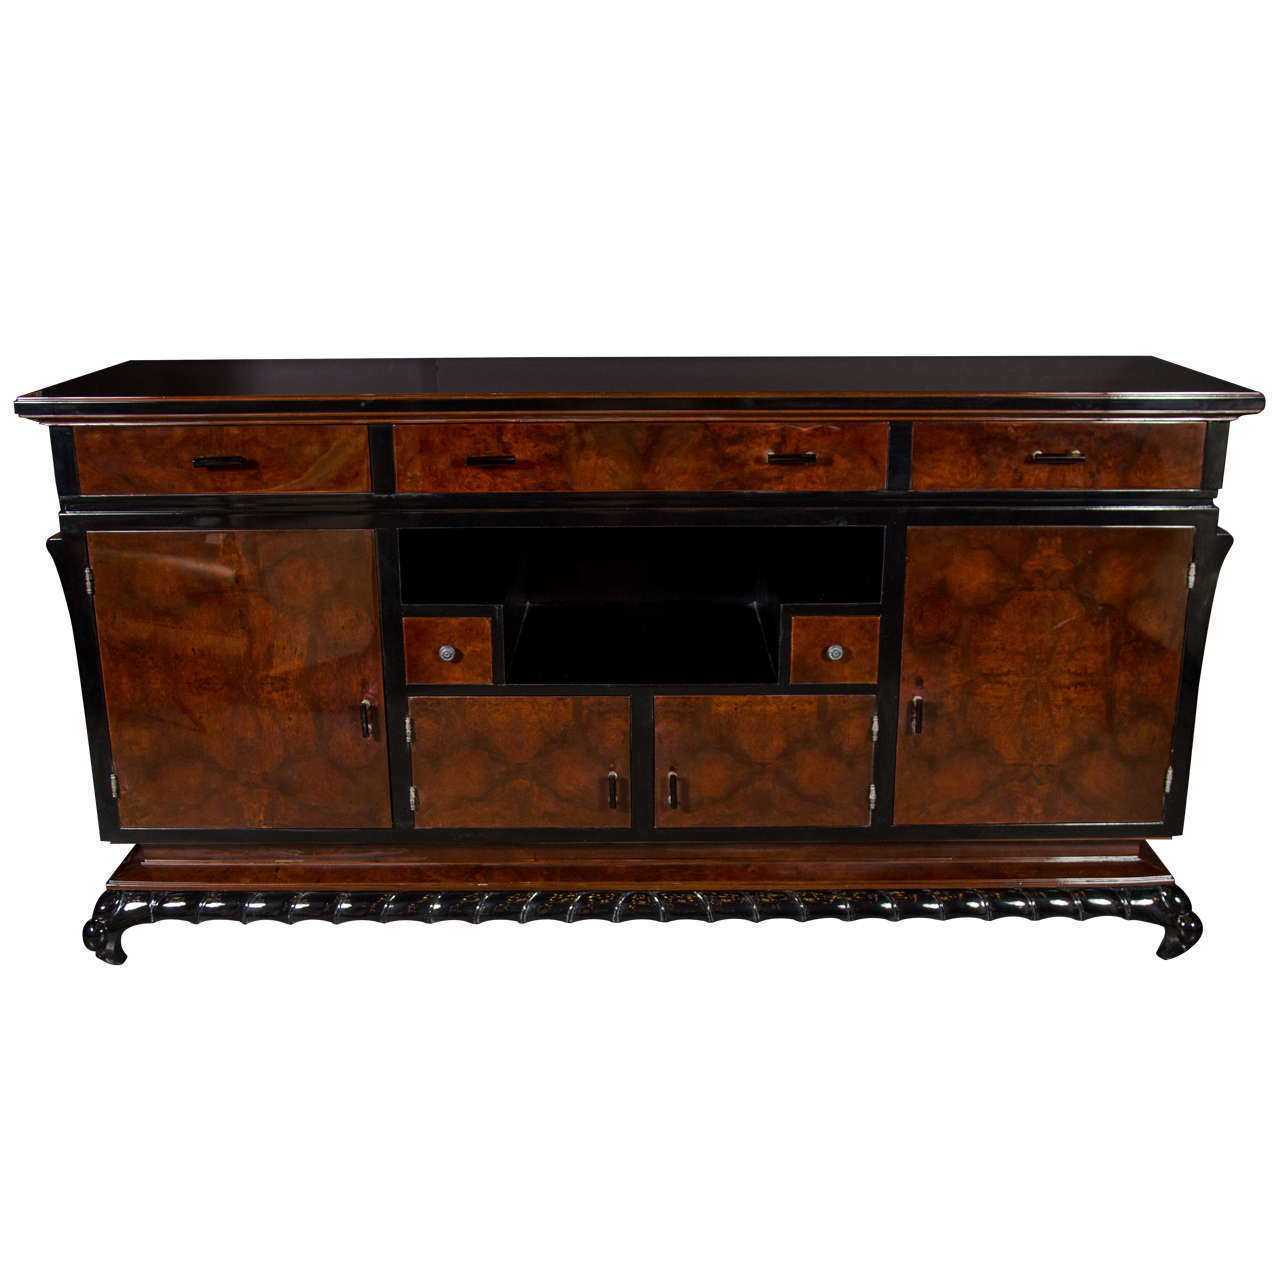 exceptional art deco sideboard in bookmatched burl walnut and central niche at 1stdibs. Black Bedroom Furniture Sets. Home Design Ideas